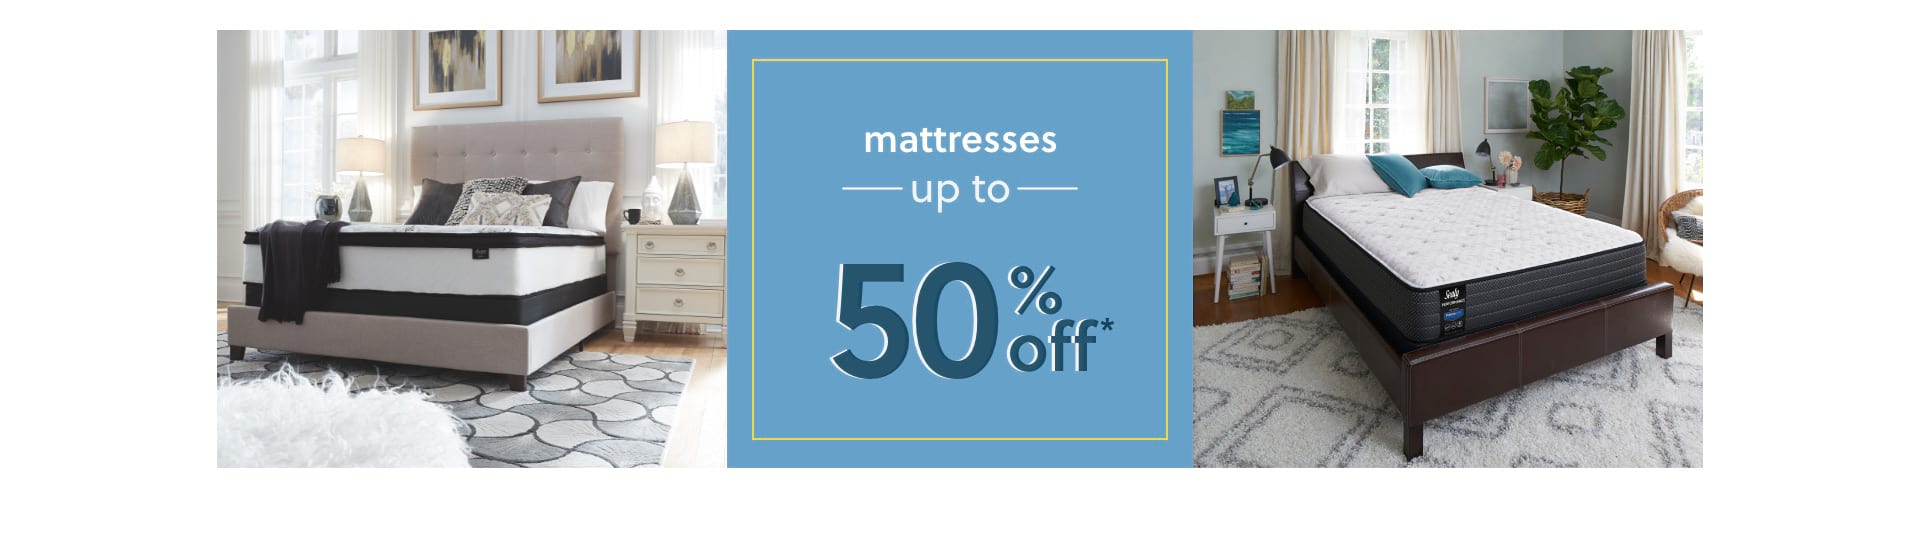 Mattresses up to 50% off*